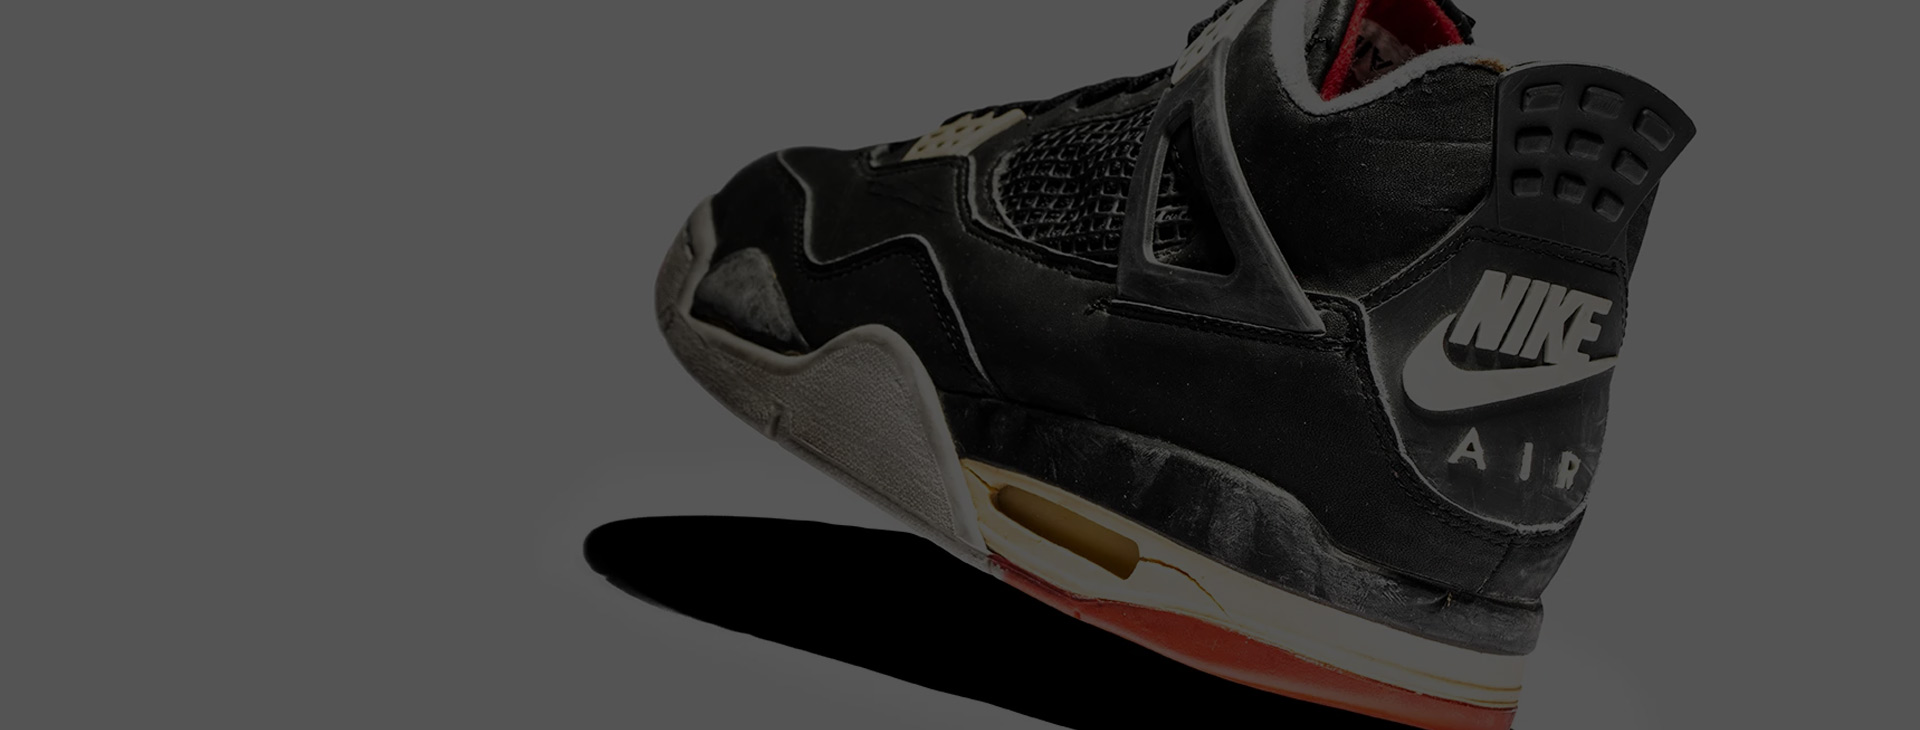 """d45a252ab5de45 Six Things You May Or May Not Know About The Air Jordan 4 """"Bred"""""""